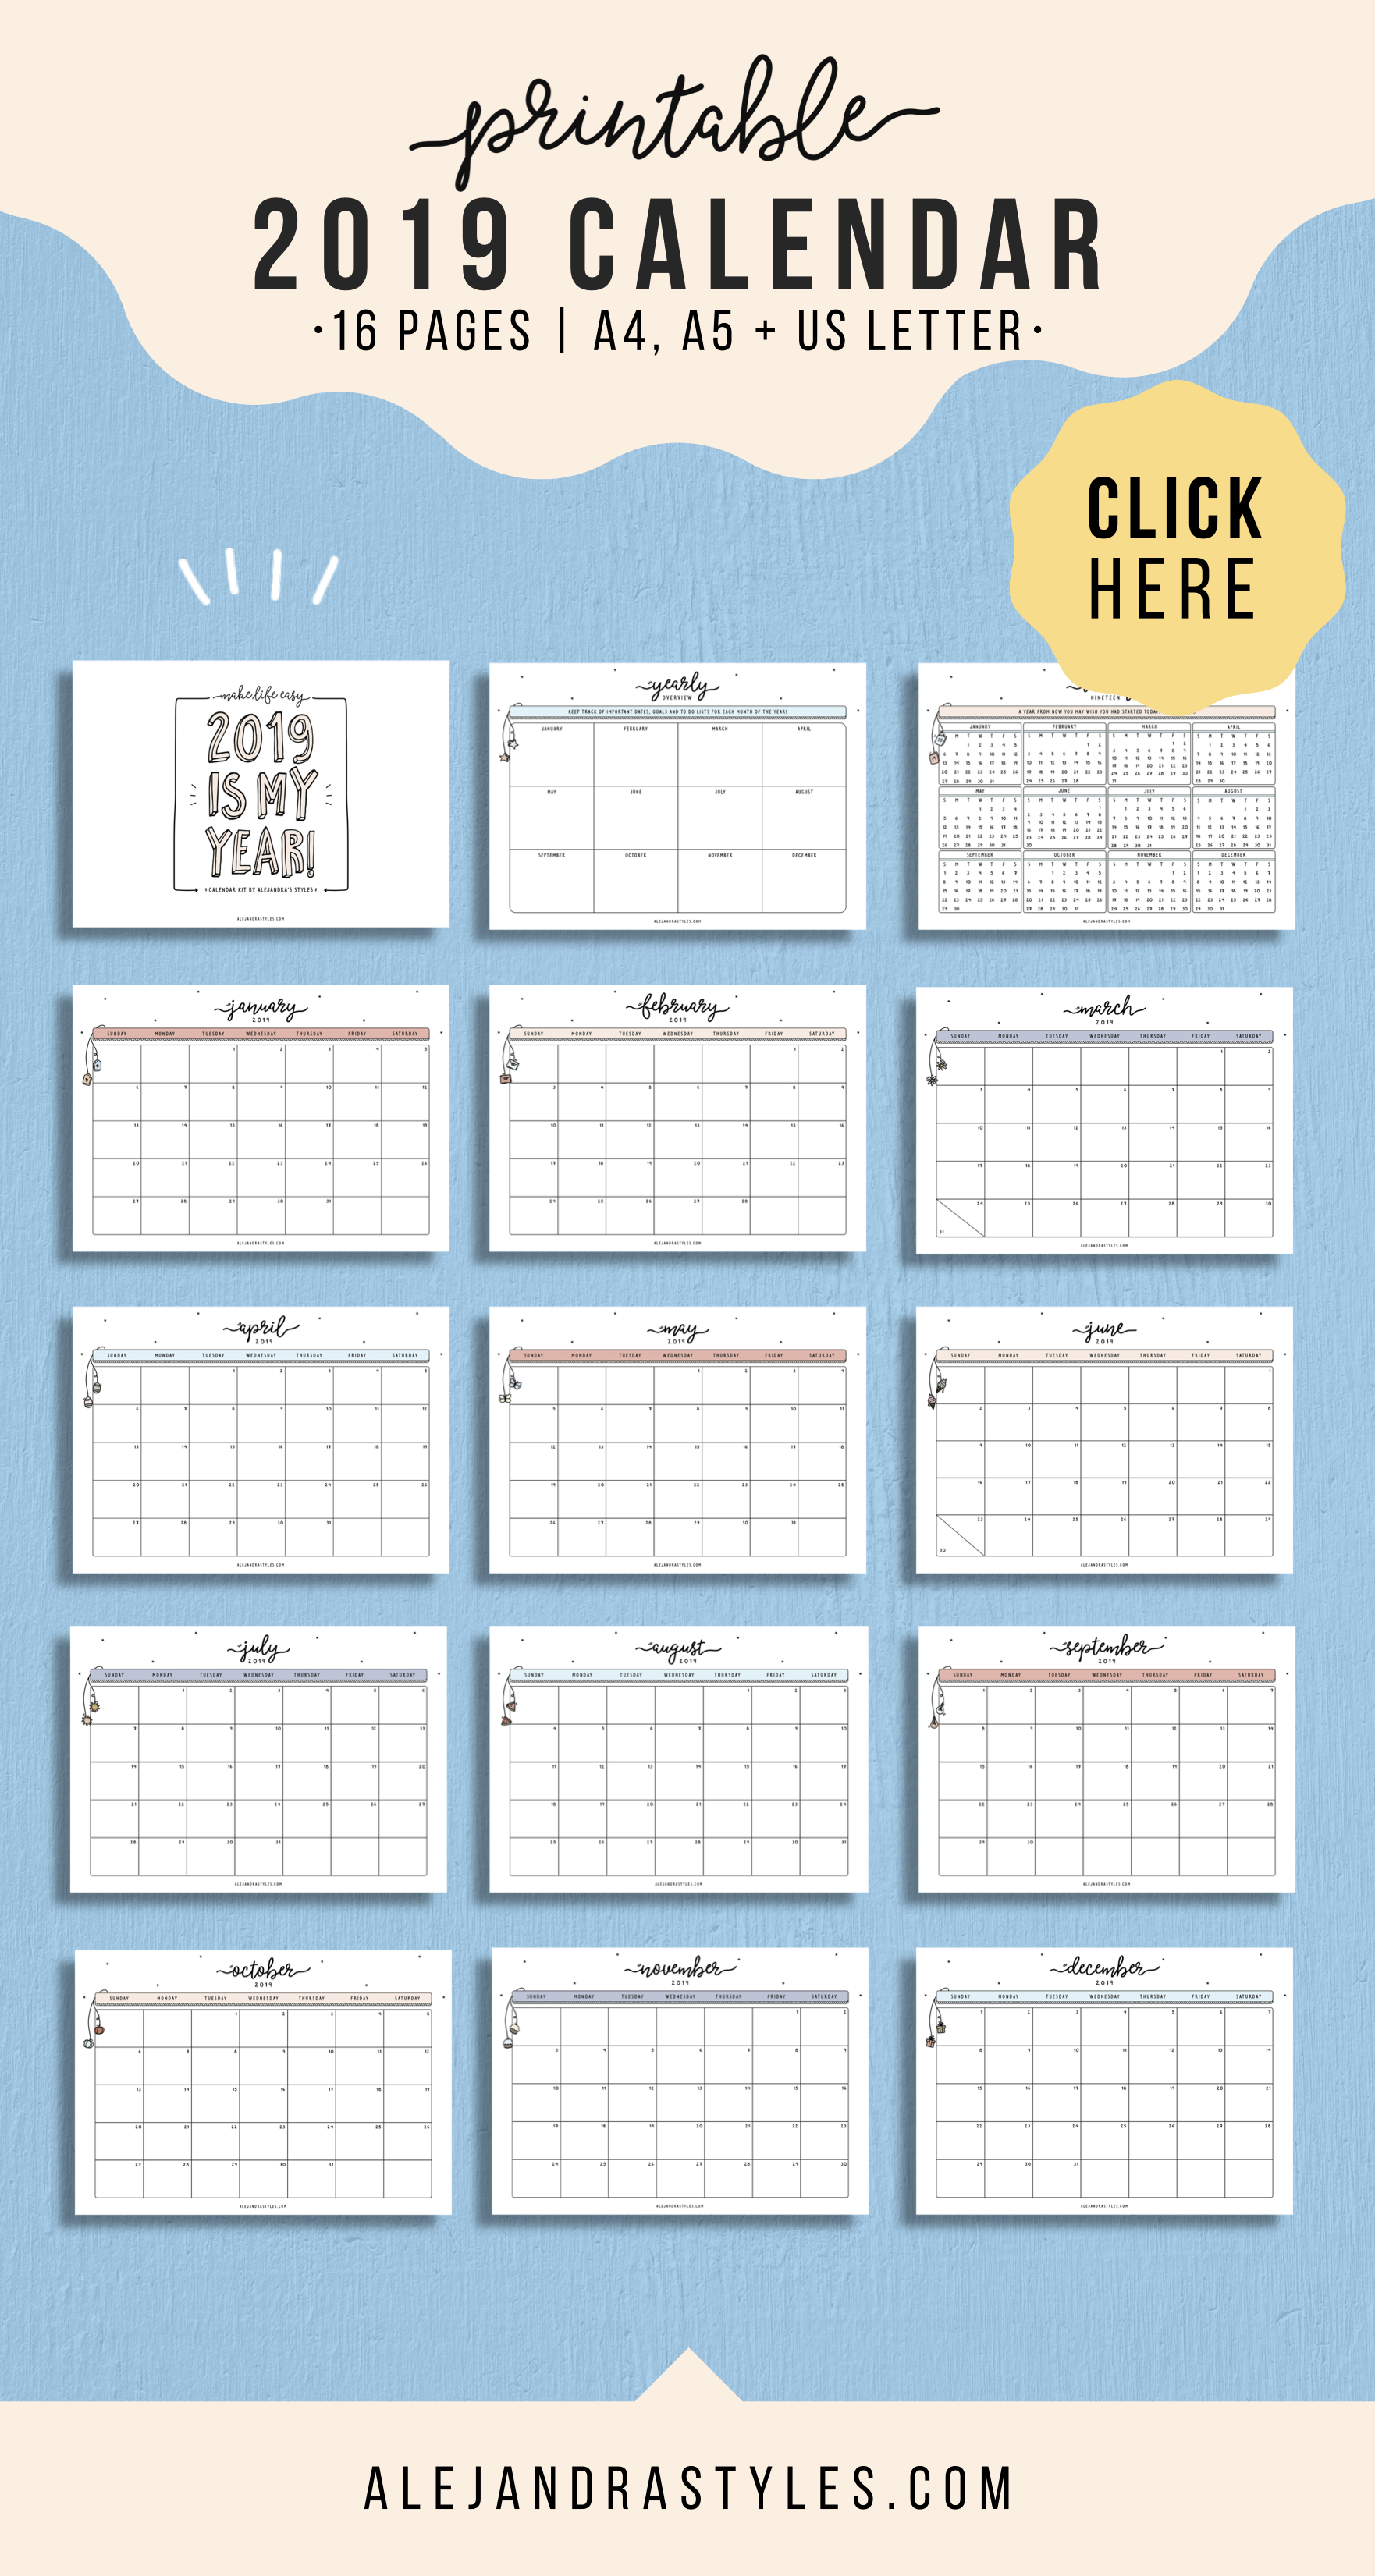 935e7229926dc Printable Calendar 2019! This is a fun monthly design to help you get  excited to organize your life! It includes a Yearly Overview and Year at a  Glance to ...